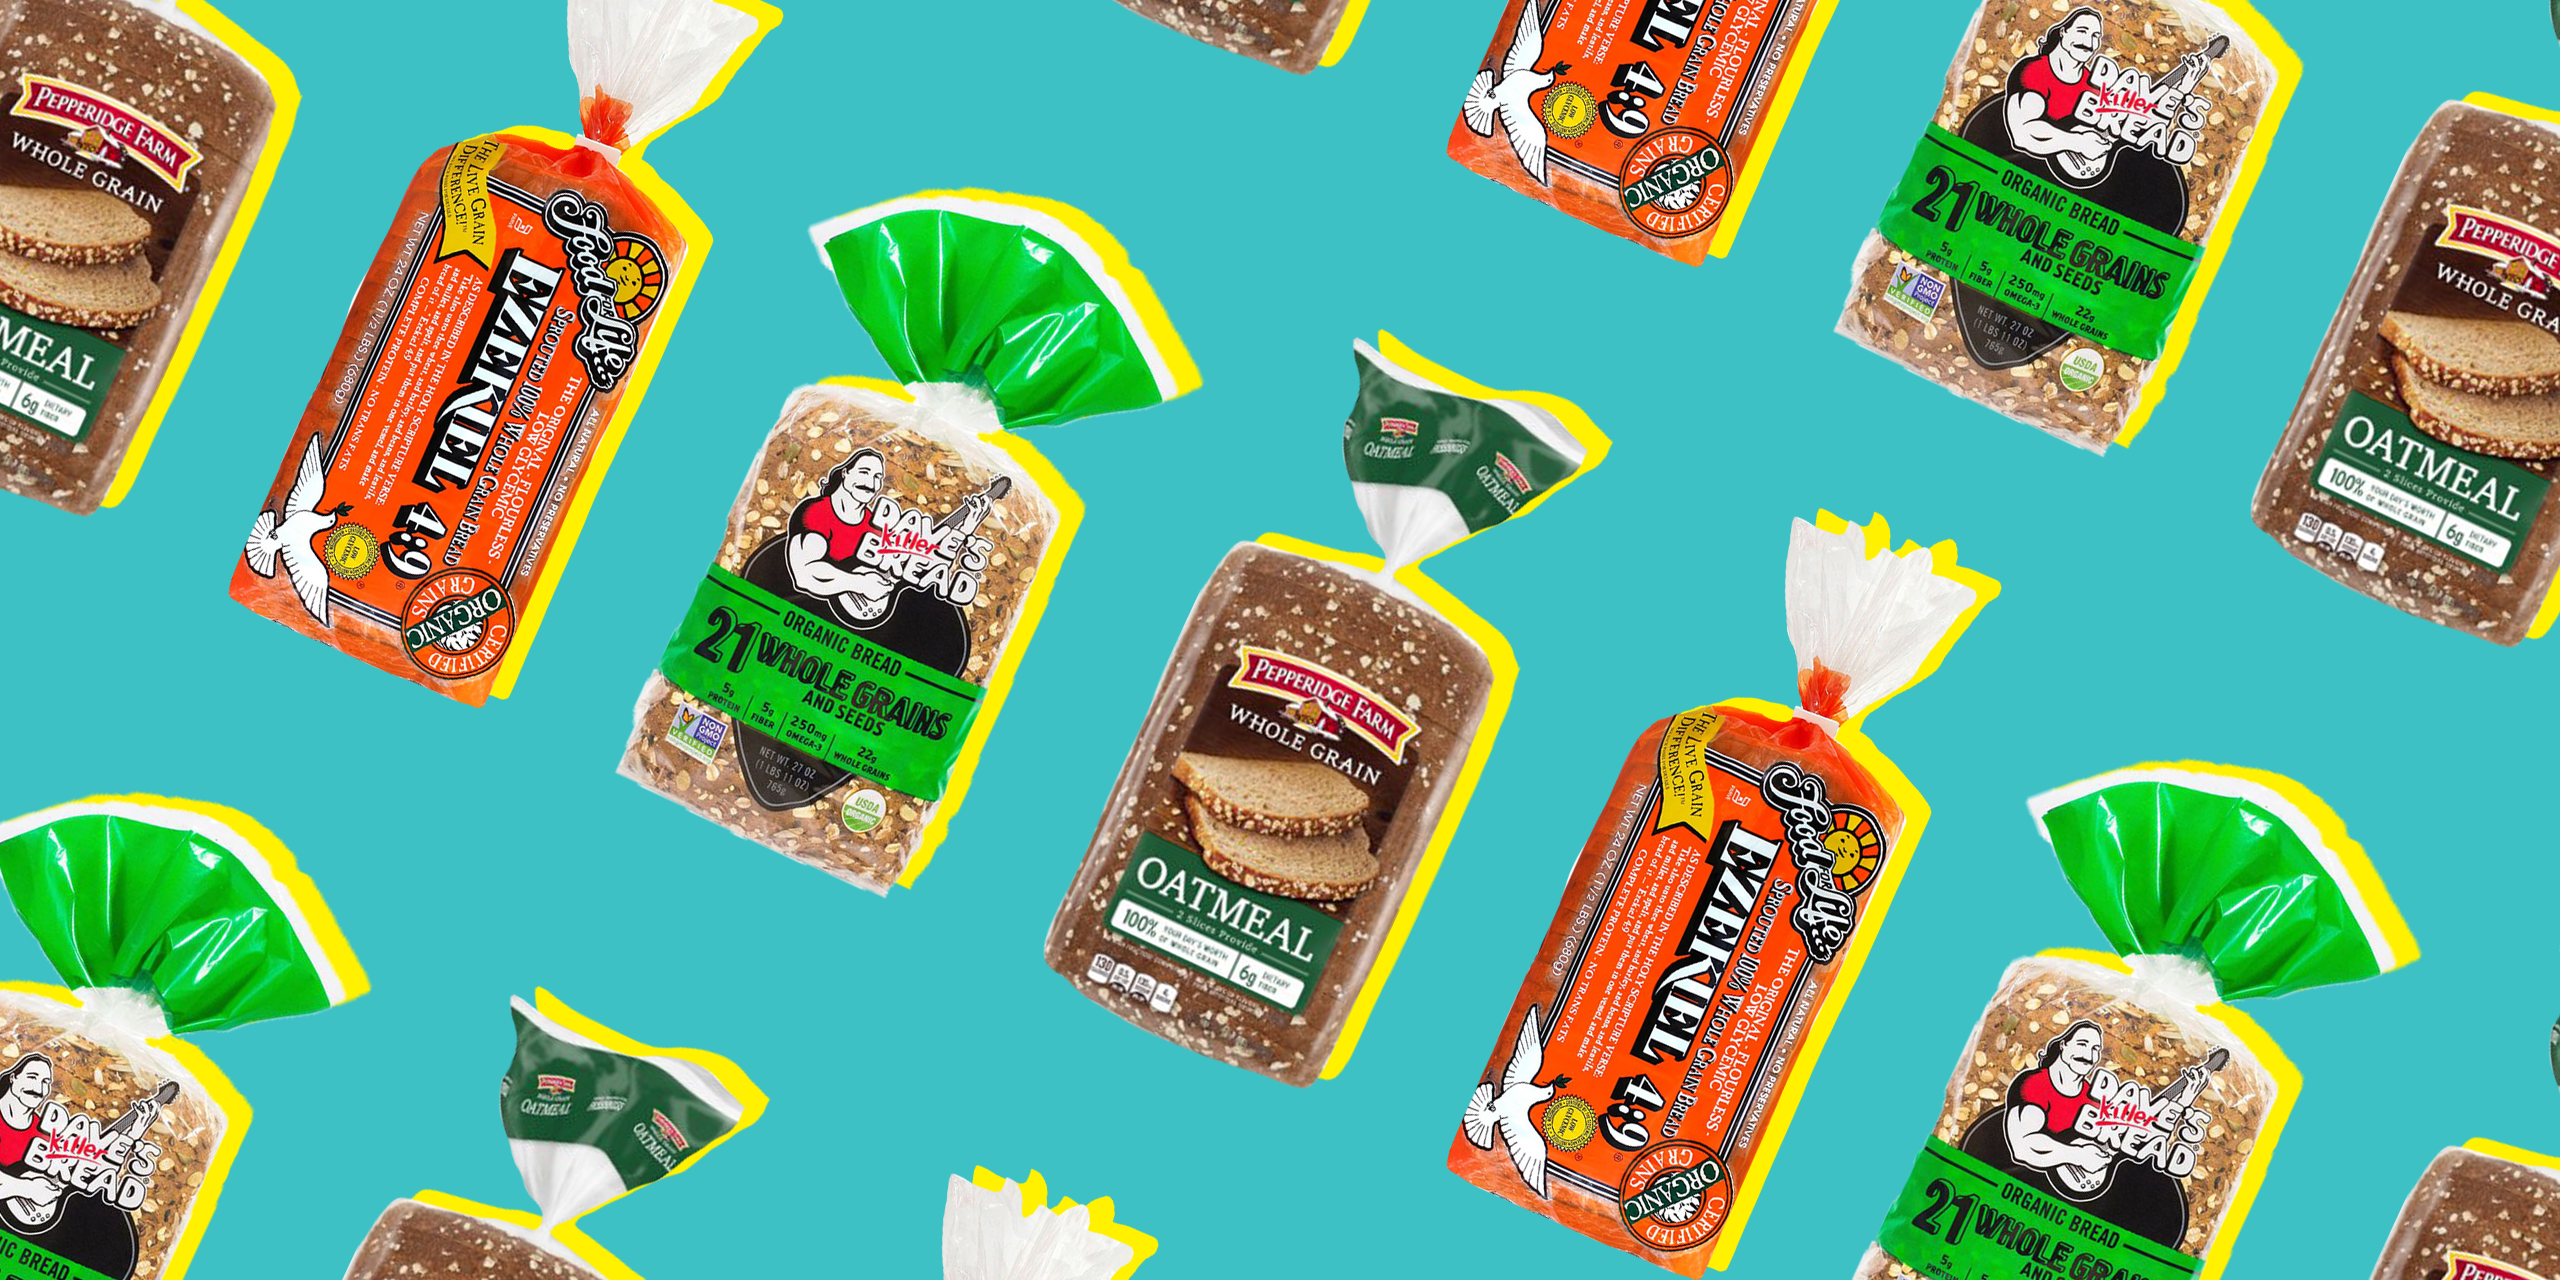 8 Healthy Breads To Pick Up At The Grocery Store According Dietitians